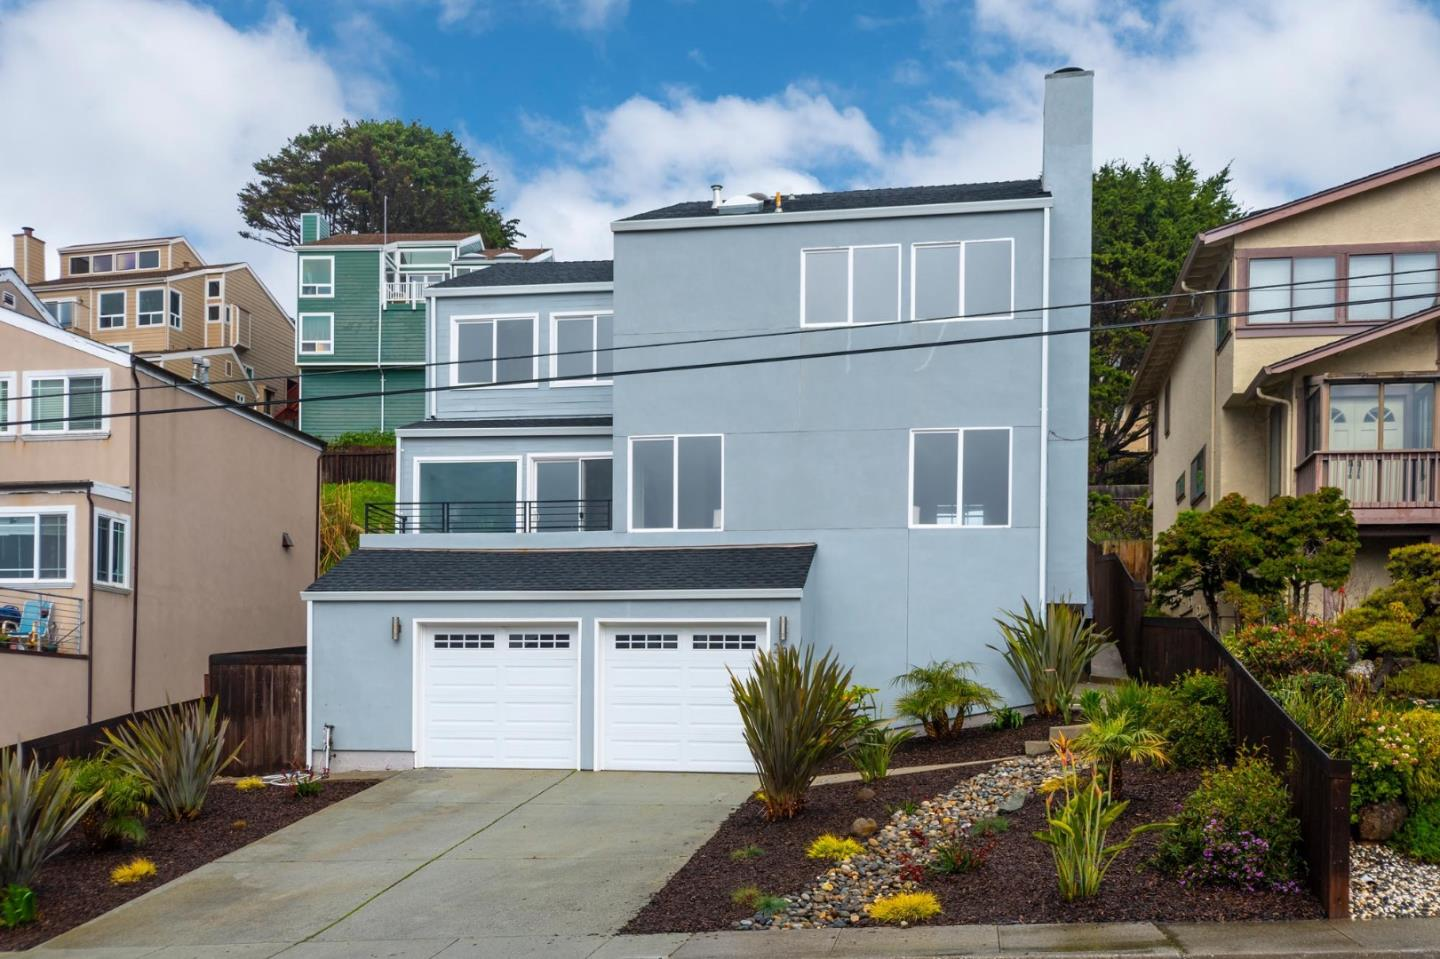 Detail Gallery Image 1 of 1 For 231 Winwood Ave, Pacifica, CA, 94044 - 4 Beds | 2/1 Baths